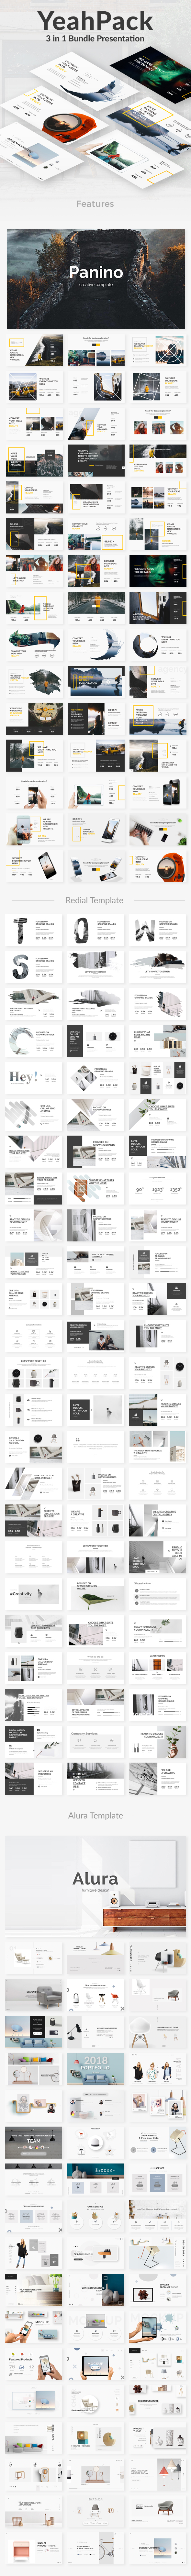 3 in 1 Yeahh Pack Keynote Creative Bundle Template - Creative Keynote Templates